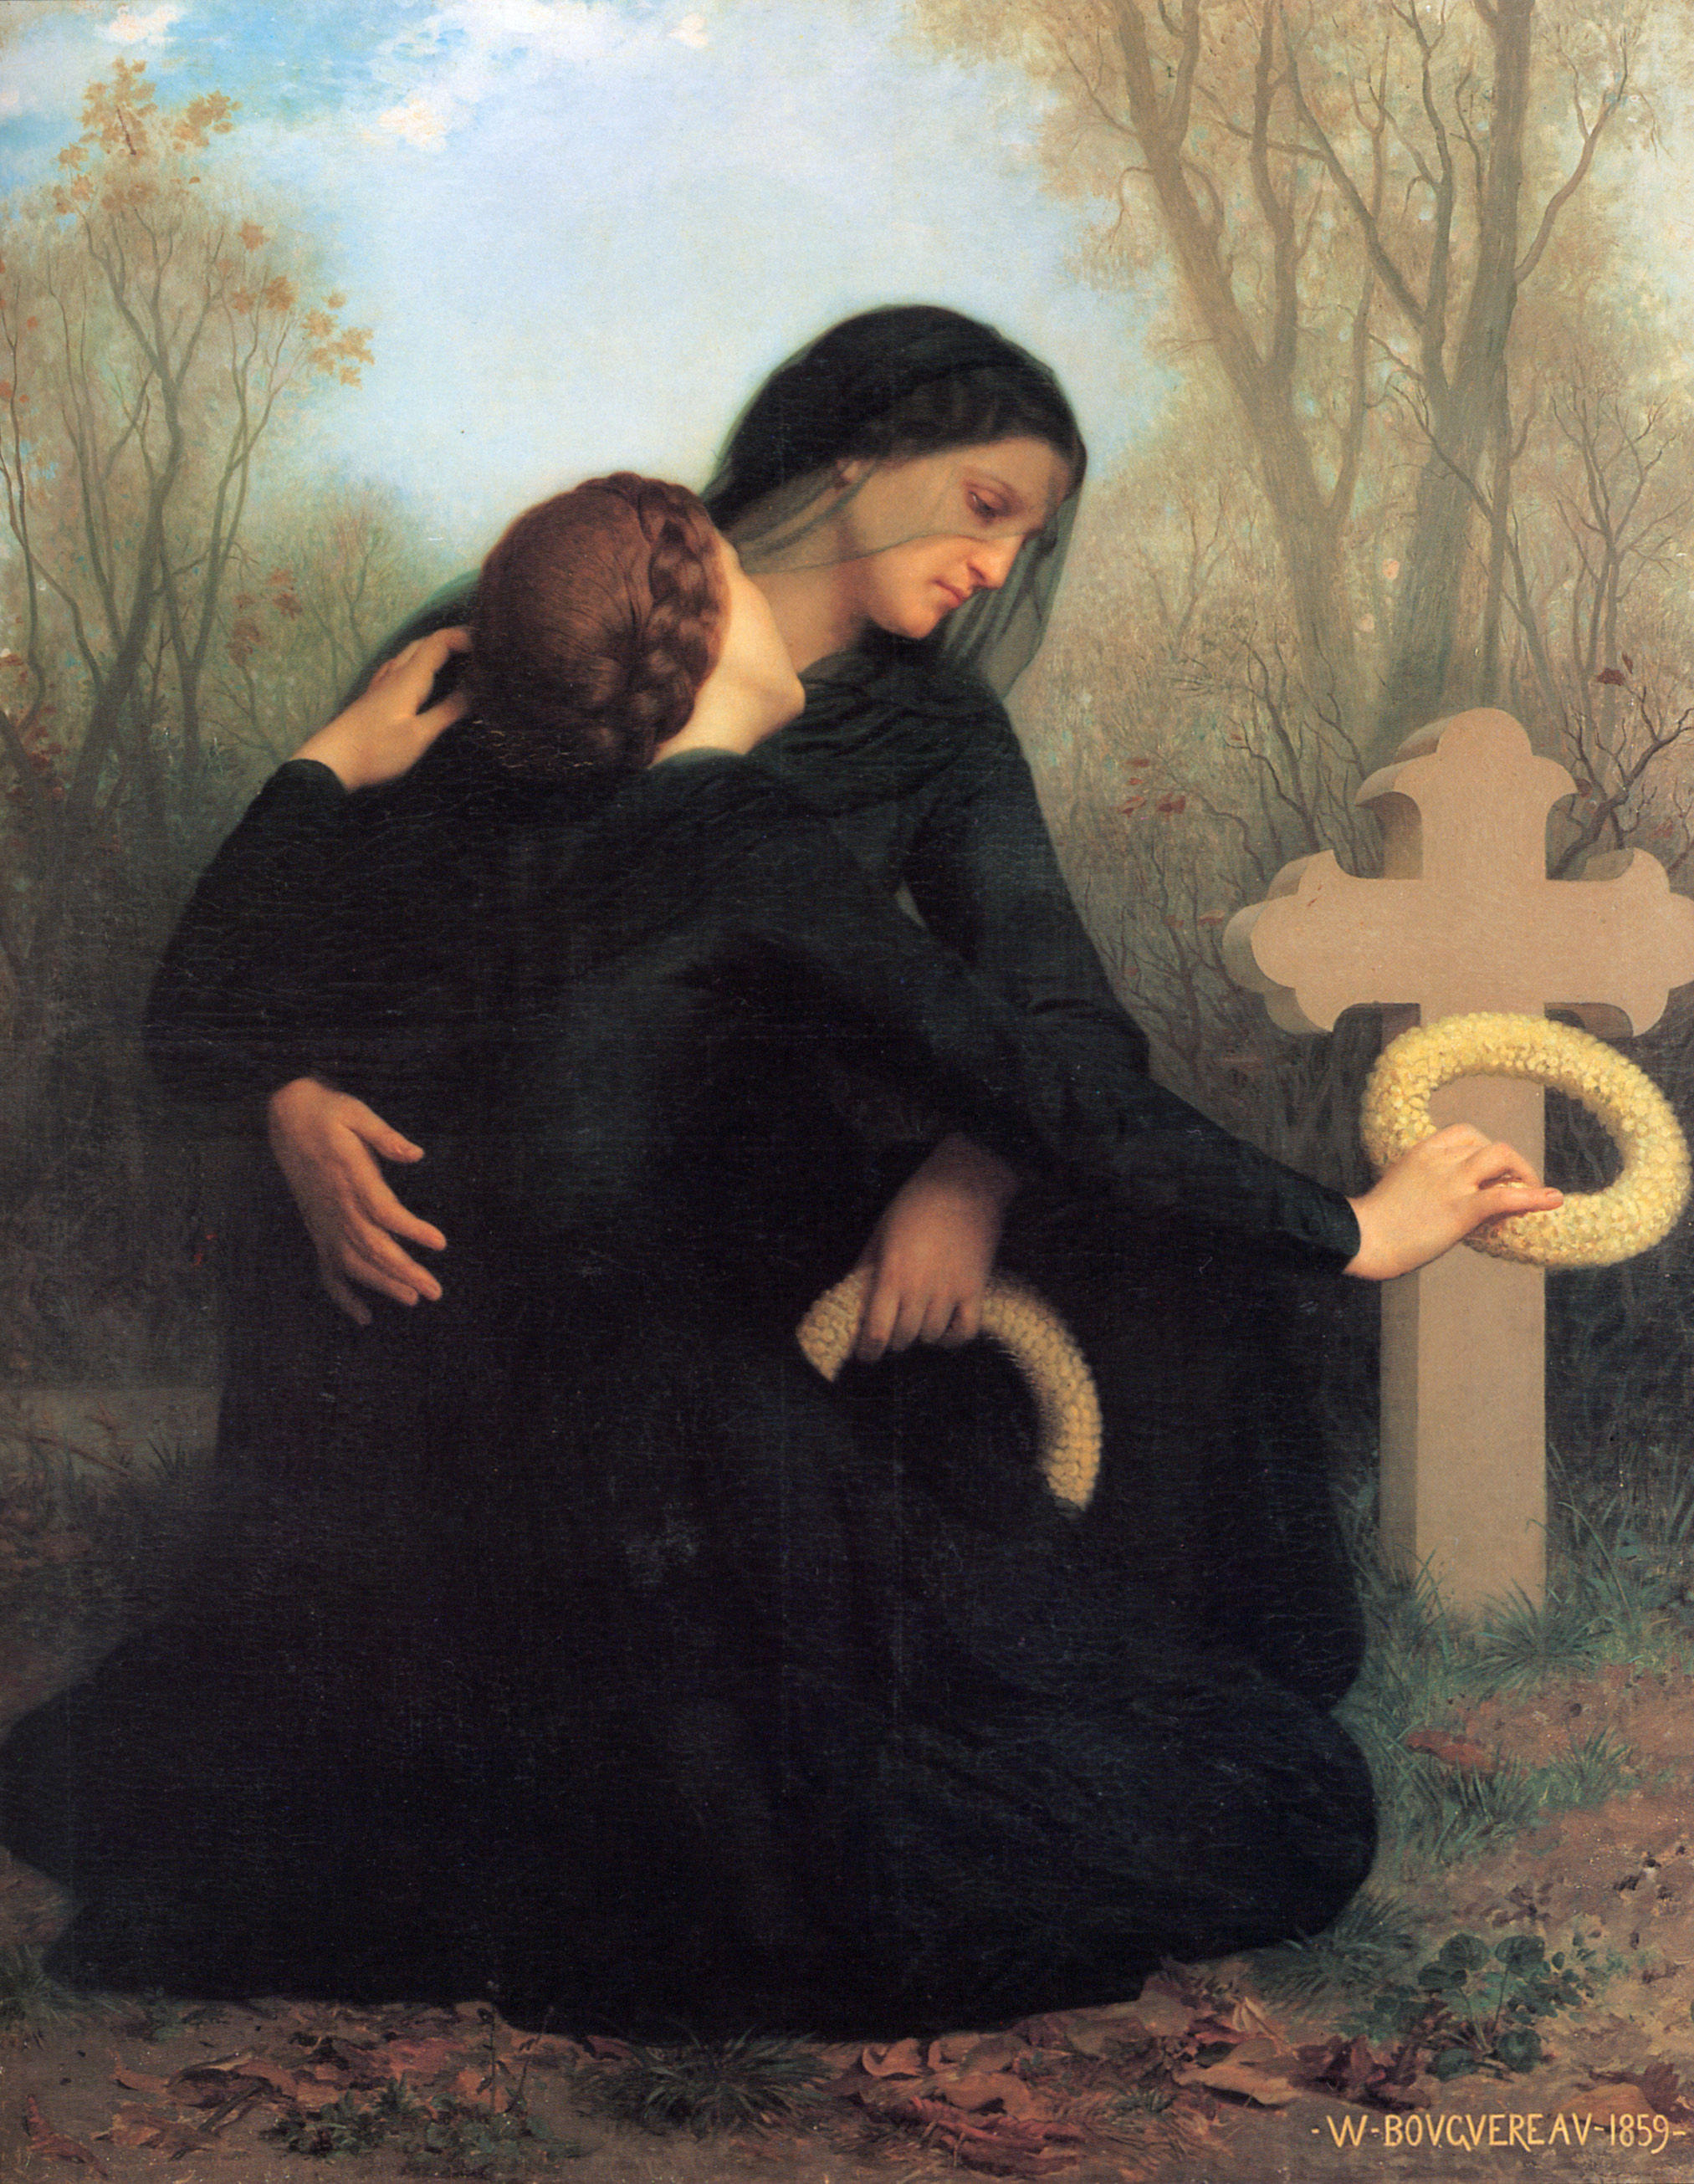 An image of All Soul's Day mourning, the Christian version of the Day of the Dead.